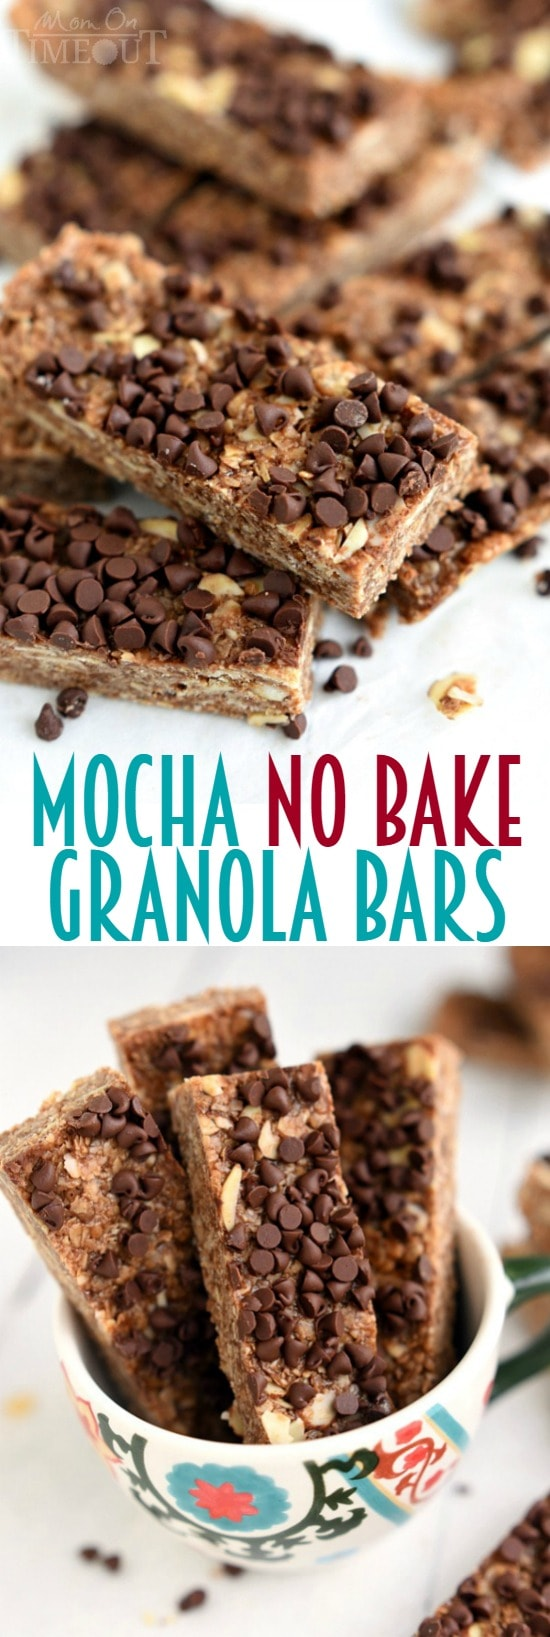 These Mocha No Bake Granola Bars are perfect for a grab-and-go breakfast or an afternoon pick-me-up snack! | MomOnTimeout.com | #breakfast #snack #recipe #chocolate #mocha